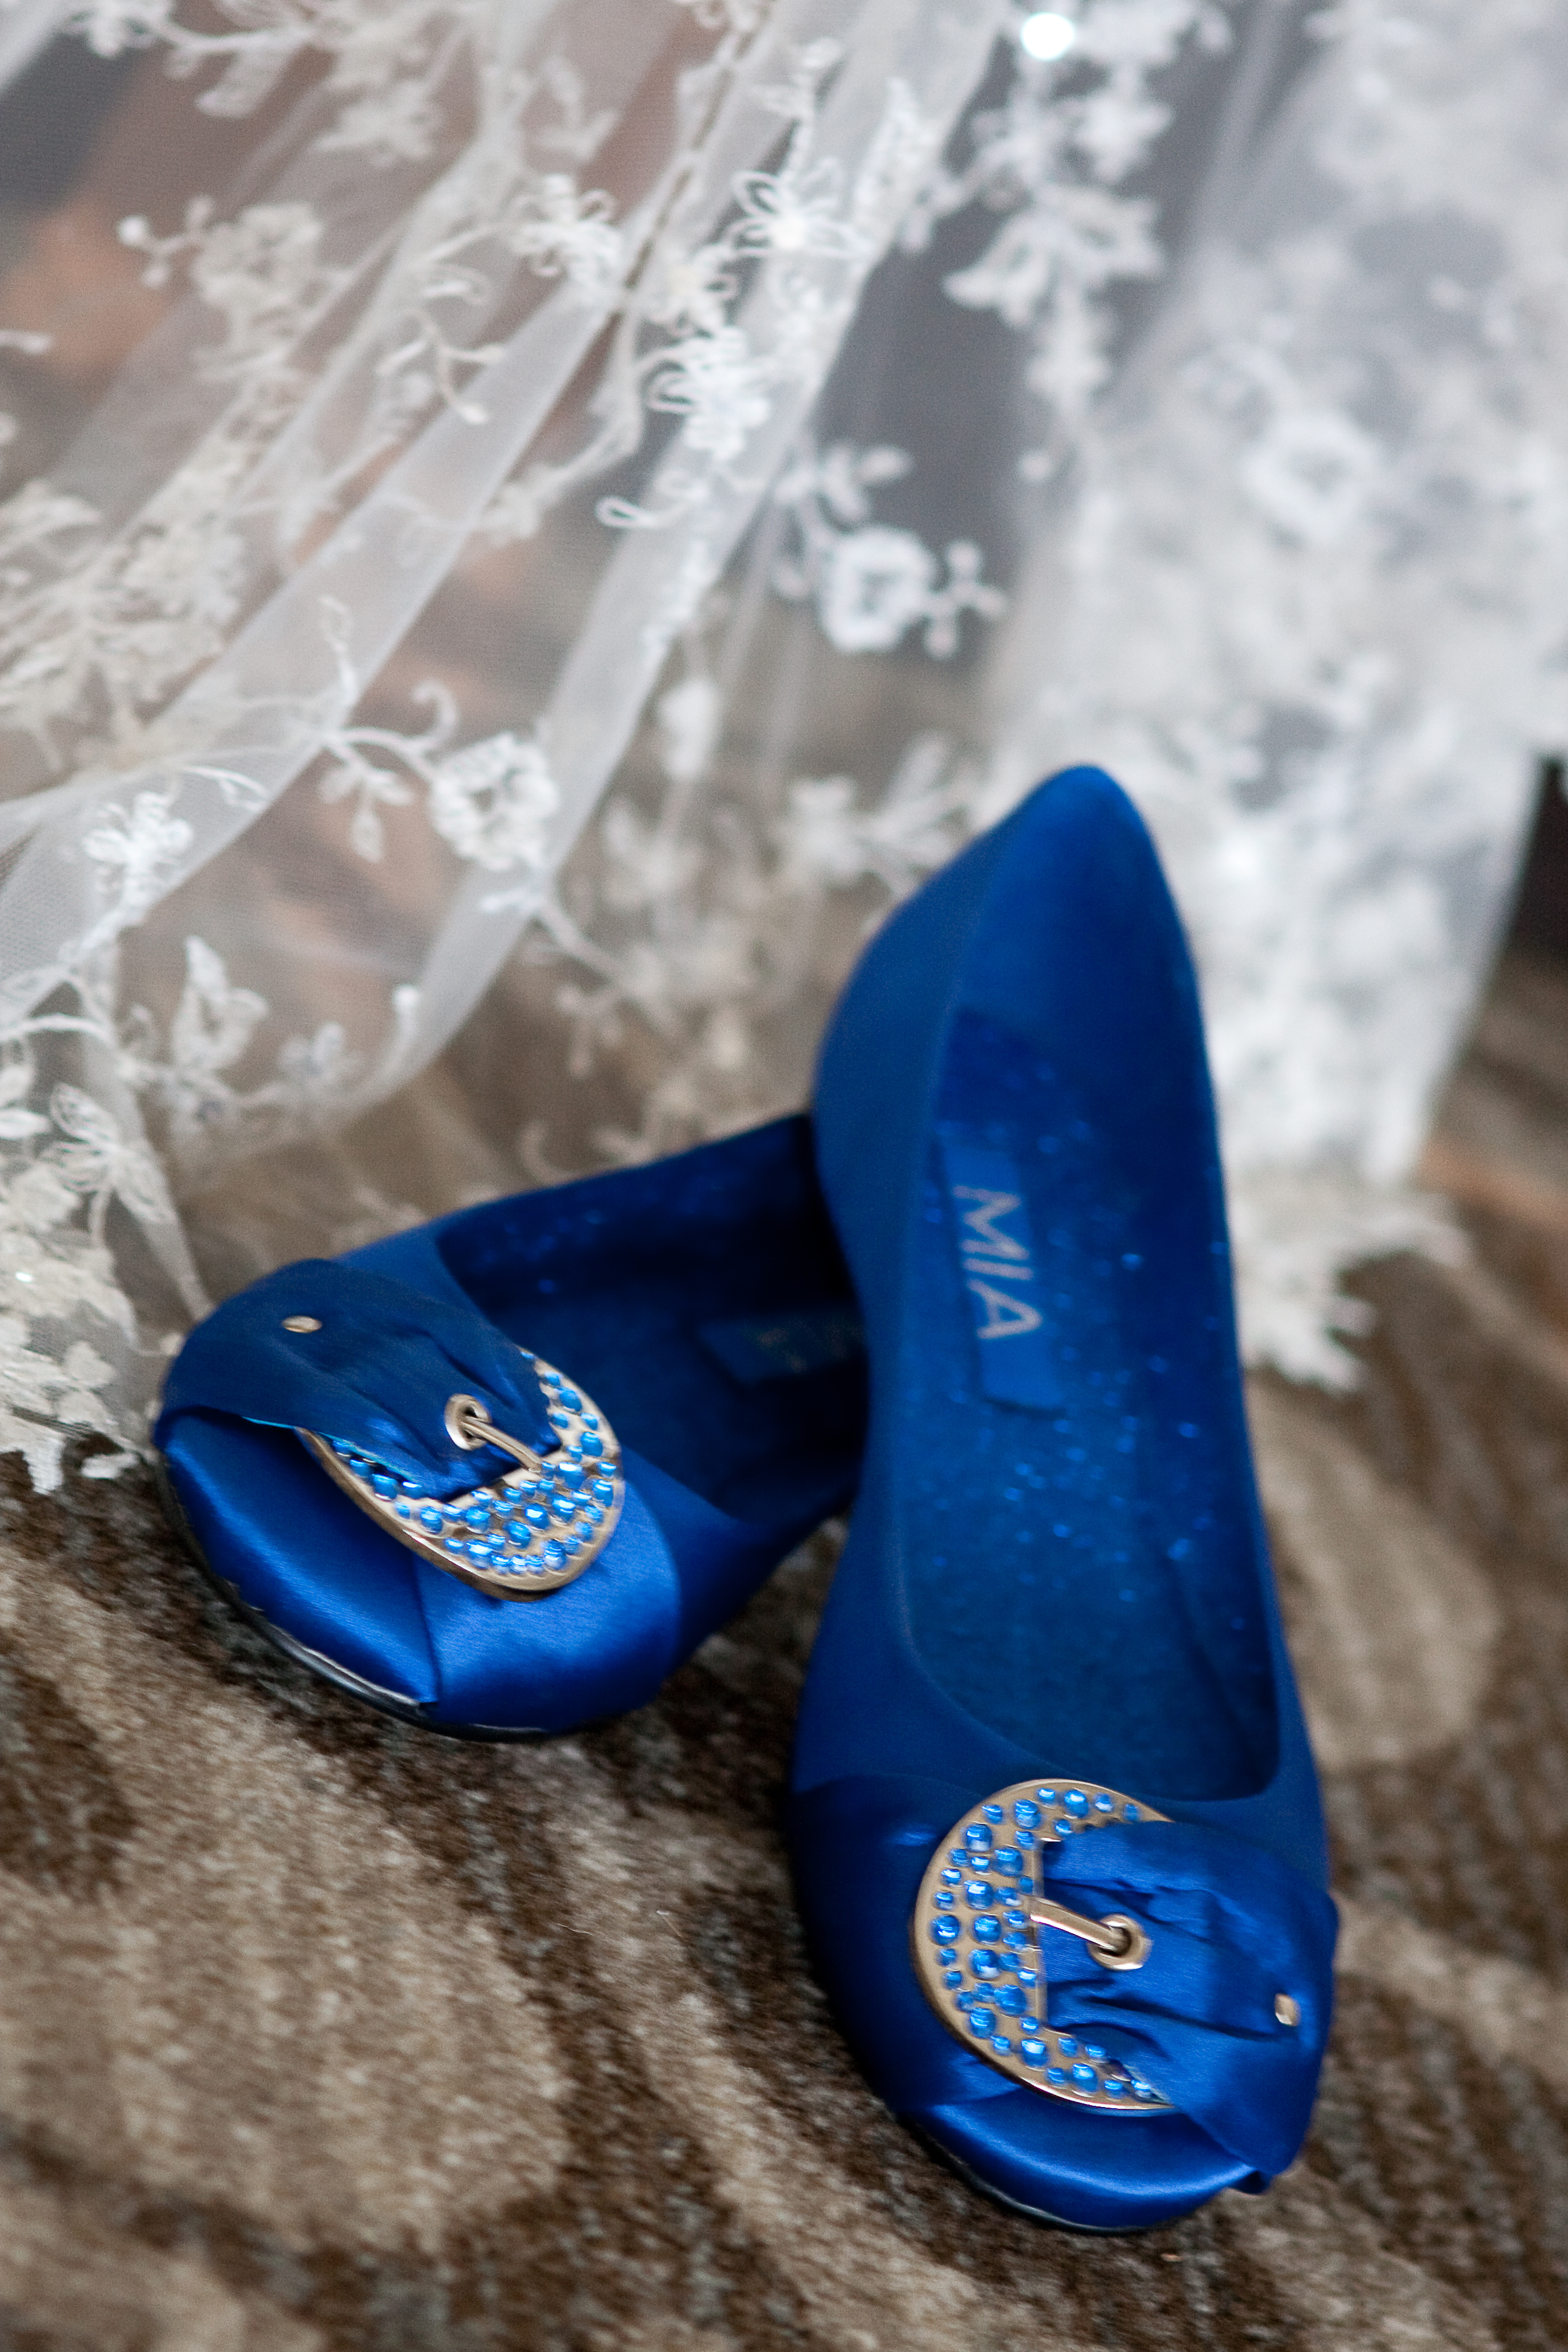 Wedding Dresses, Shoes, Photography, Fashion, blue, dress, Flats, Hollis, Cari